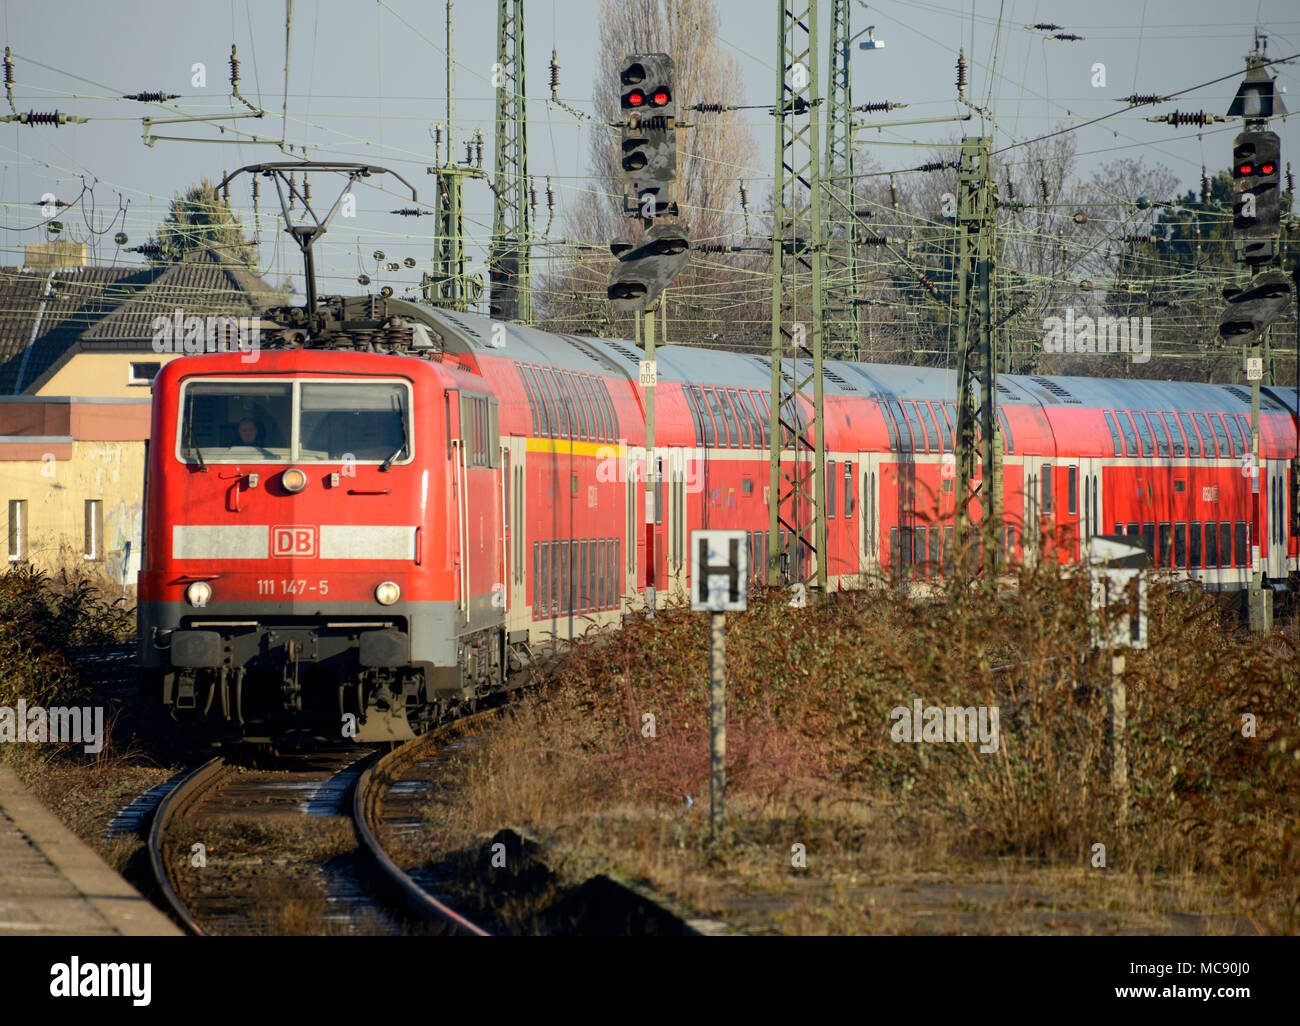 A DB service hauled by a class 111 locomotive approaches Monchengladbach station in Germany - Stock Image